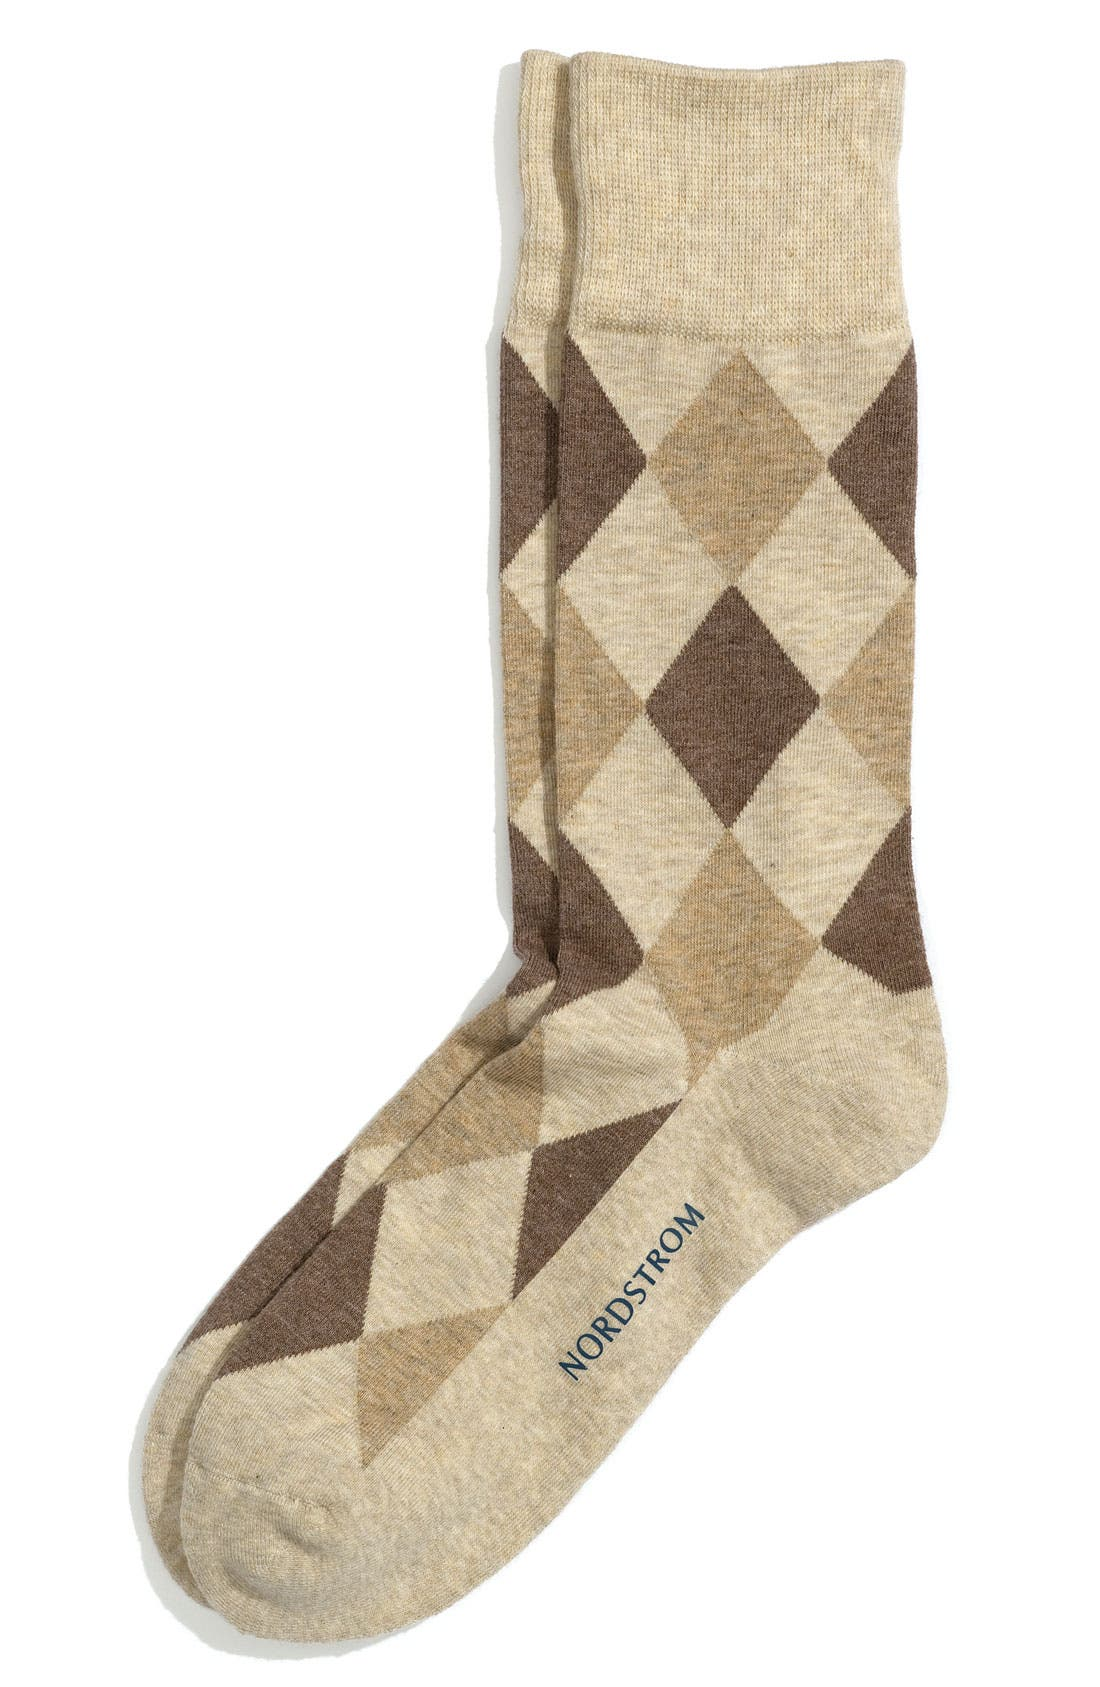 Main Image - Nordstrom 'Cushion Foot' Socks